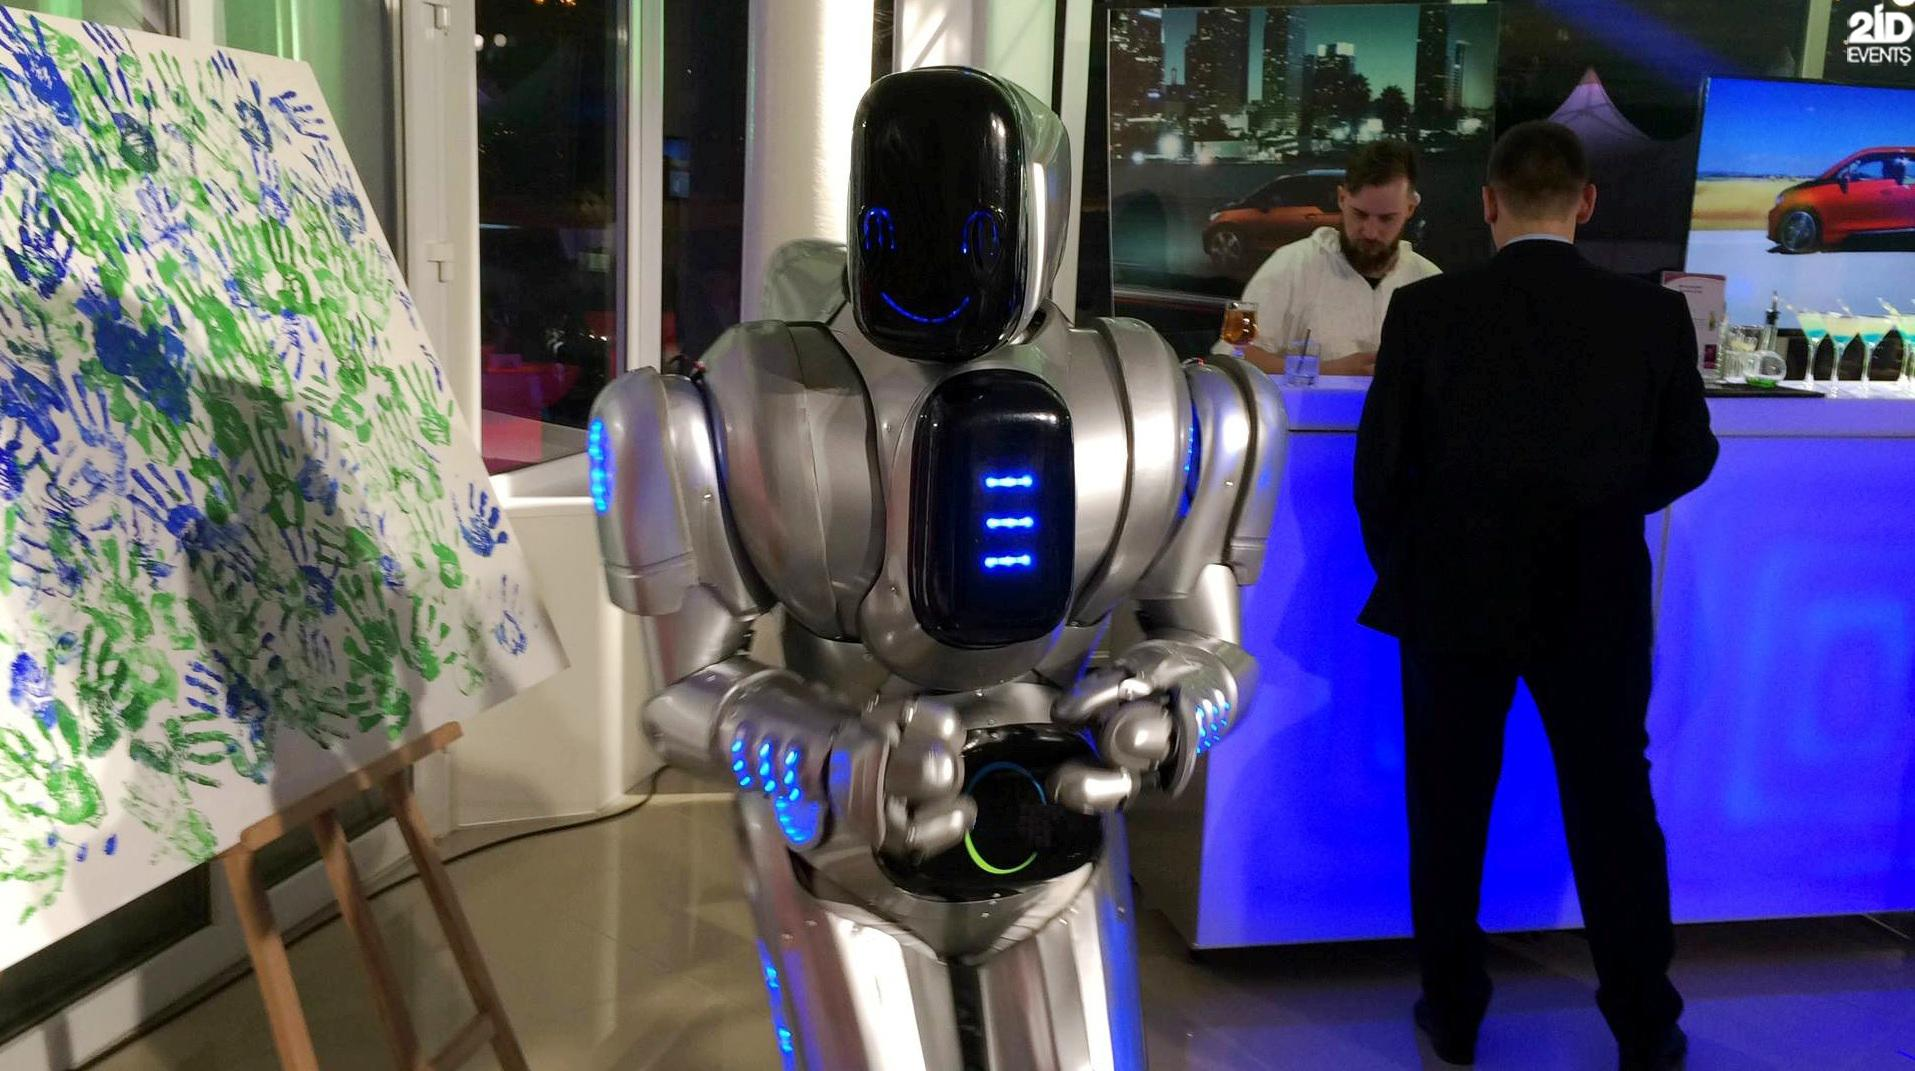 Friendly Robot for exhibitions